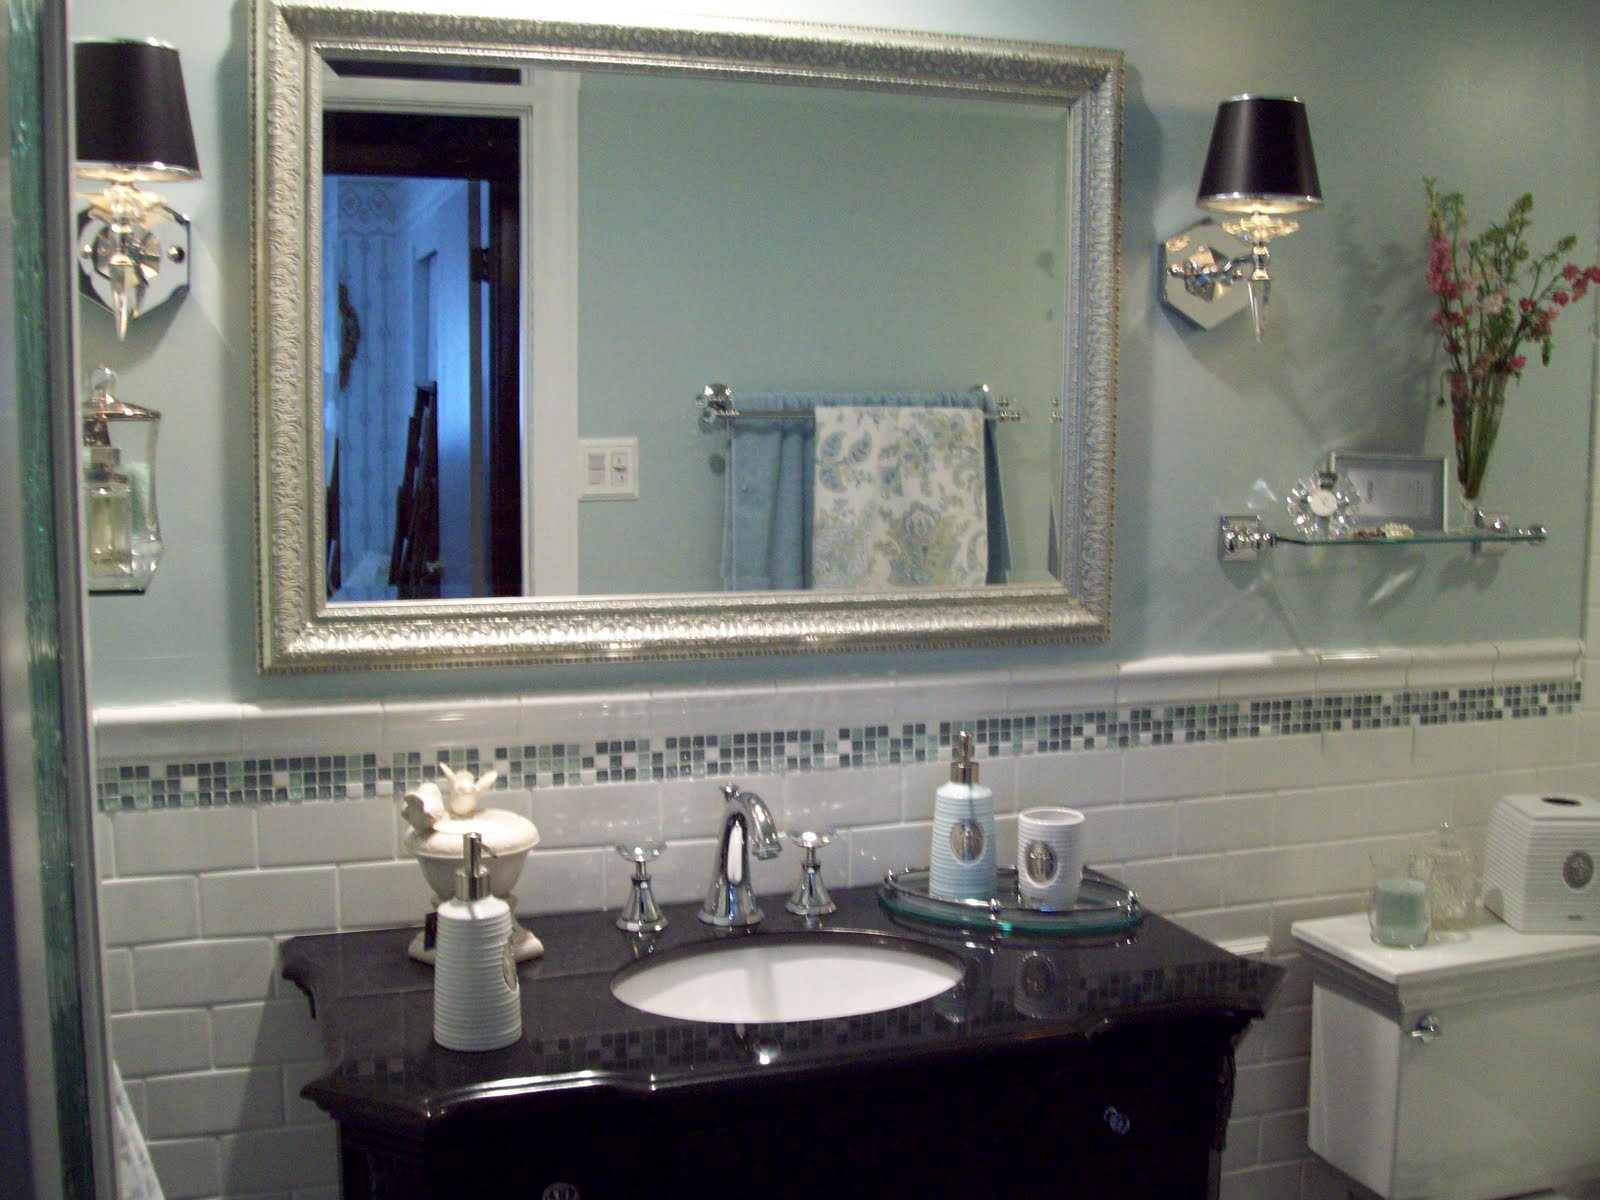 General splendour happy birthday bathroom one year ago - Traditional bathroom mirror with lights ...